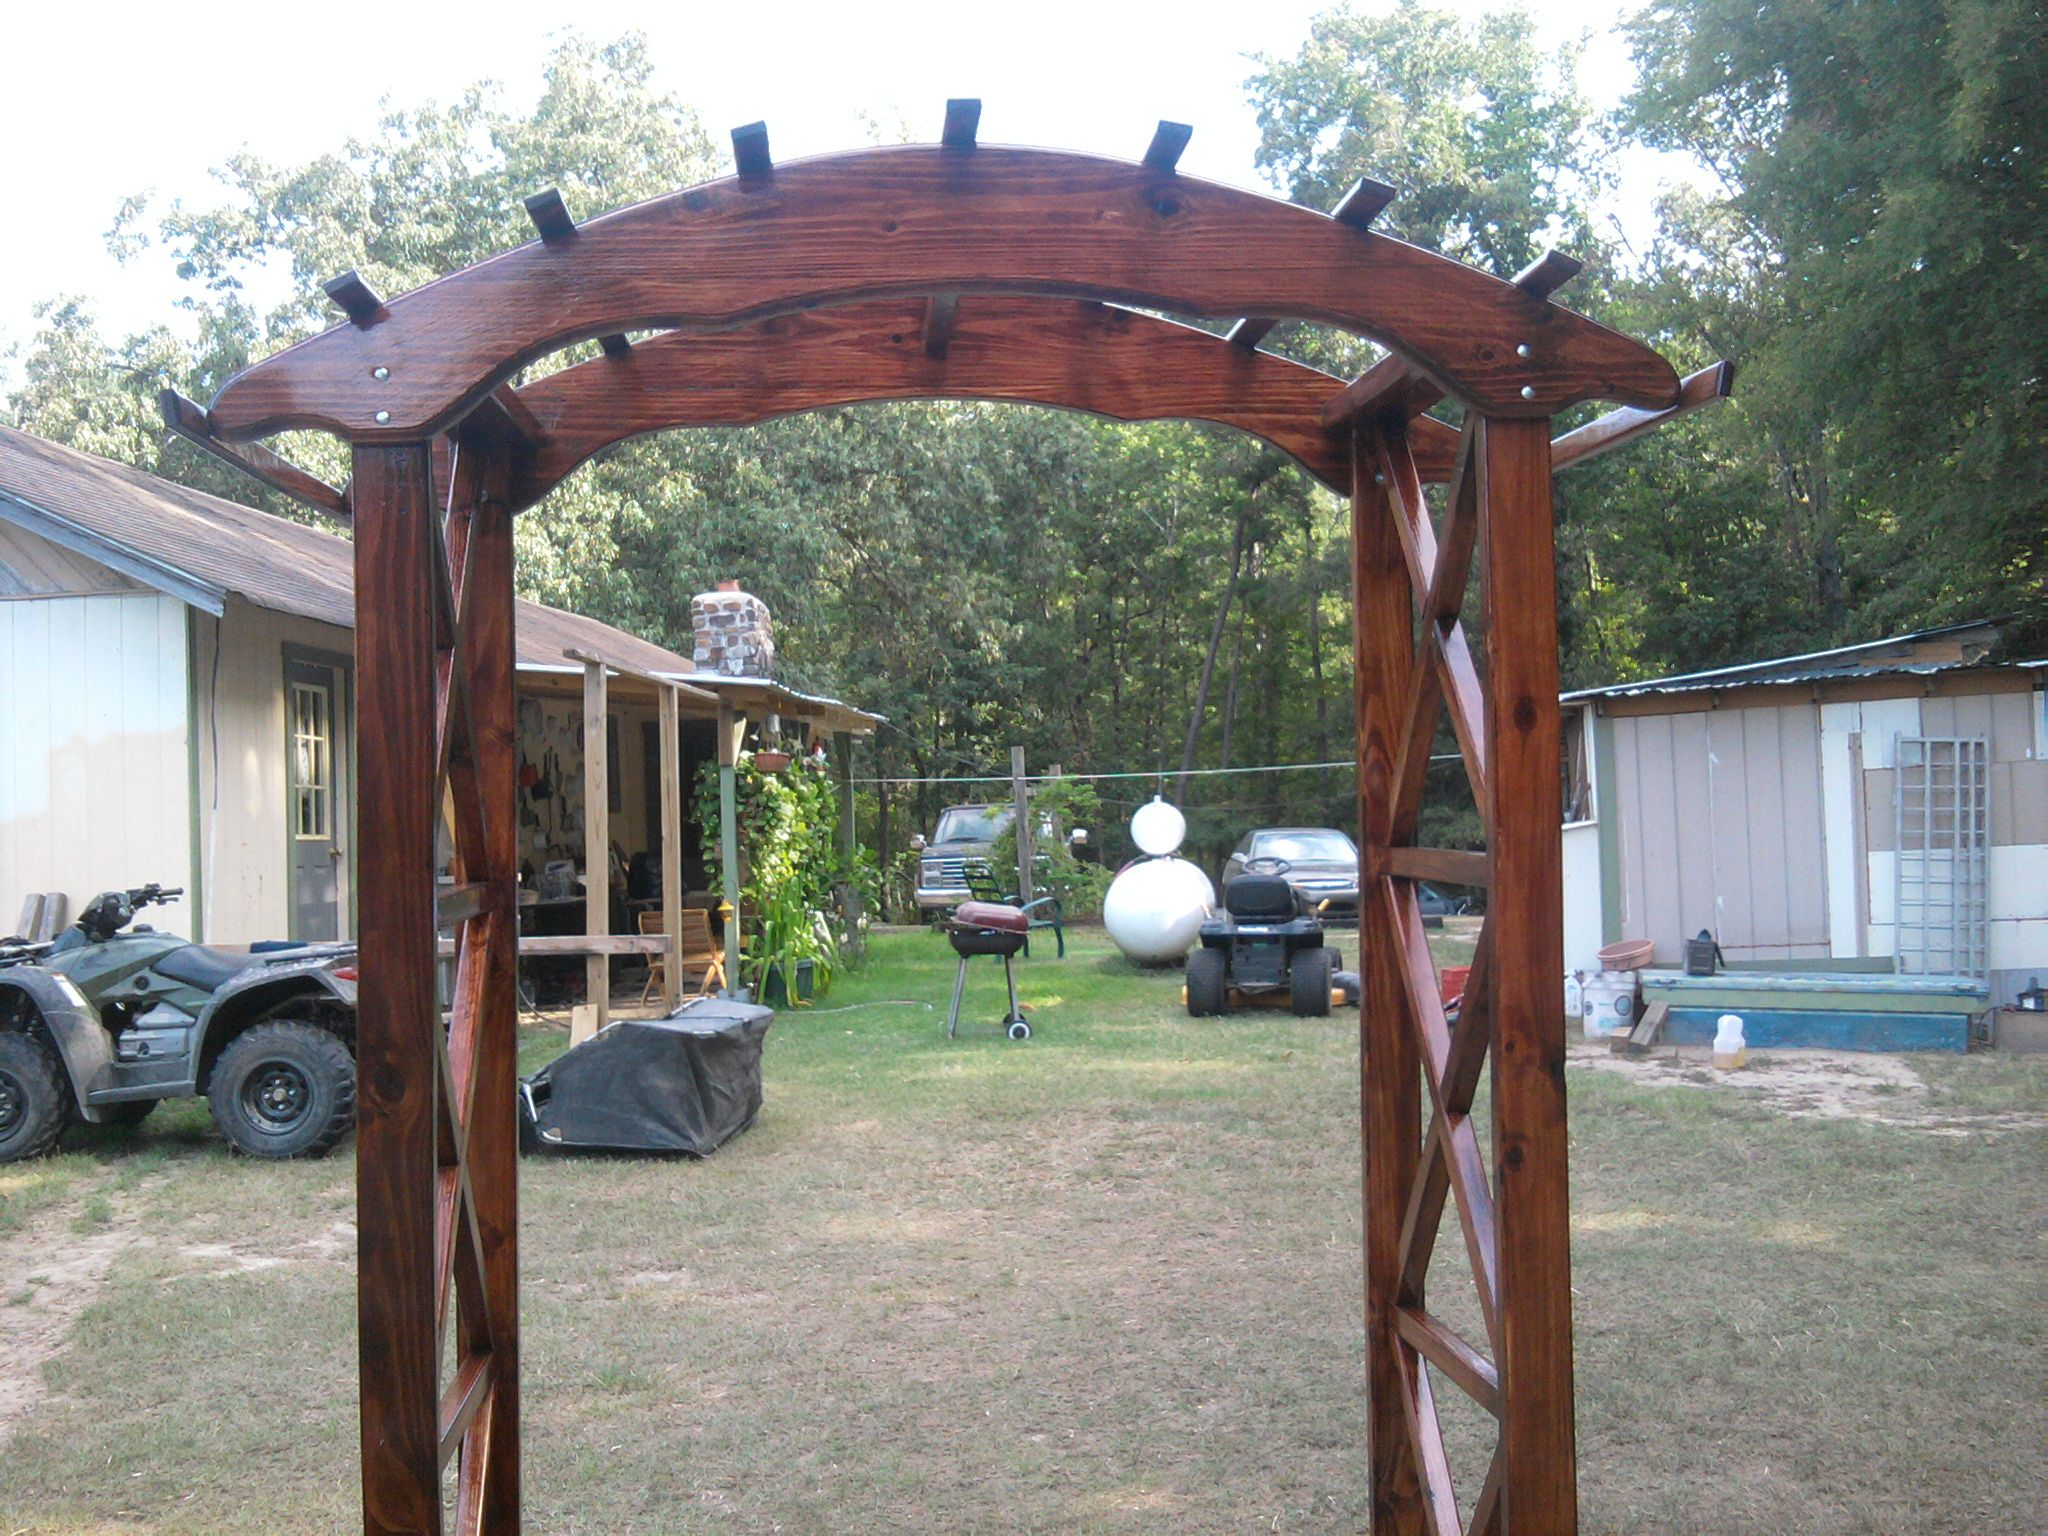 Rustic x wedding arch do it yourself home projects from ana white rustic x wedding arch do it yourself home projects from ana white solutioingenieria Image collections